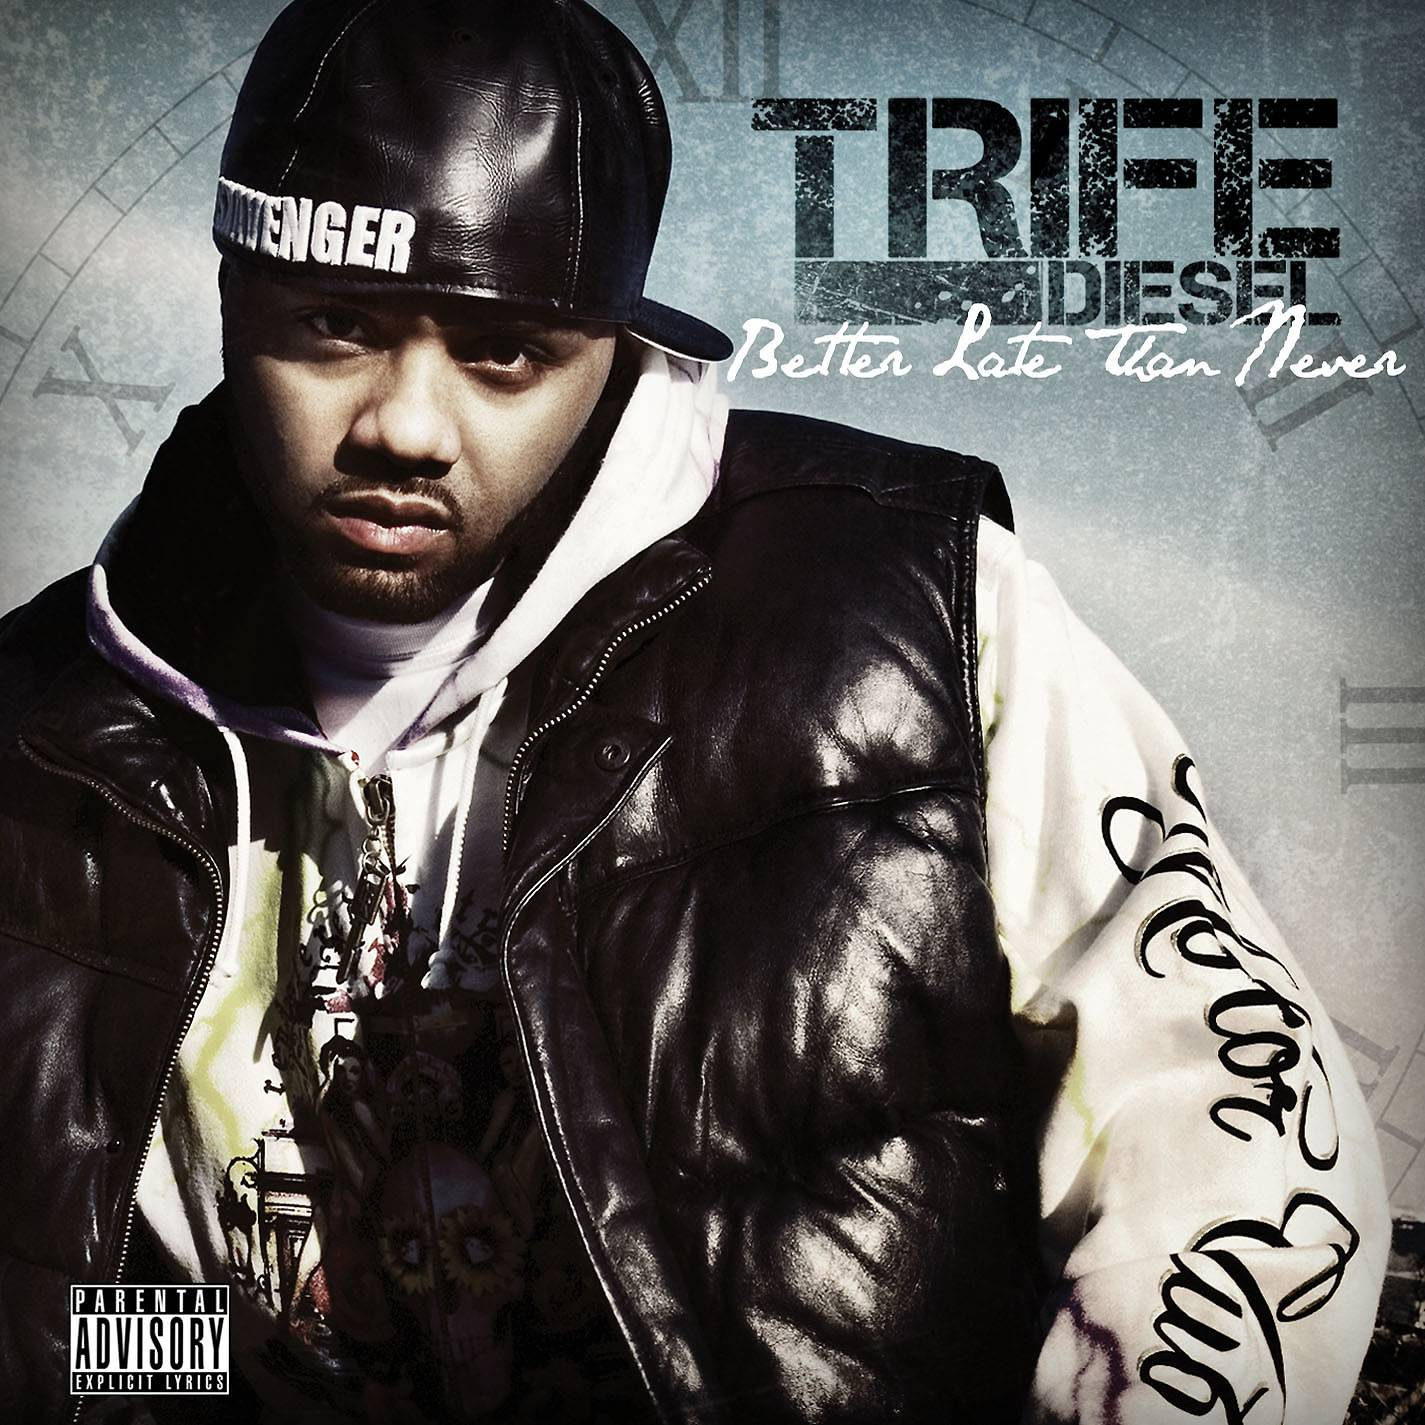 """Trife - Tavache """"Trife"""" Kizerdied October 7, 2013, after being shot in the head. The 38-year-old MC rapped about stopping gang violence and was not believed to be the intended target. At the time of his death, he was editing his video """"Respect the Youth,"""" which sheds light on the murderous epidemic going on in Chicago.(Photo: Traffic Entertainment Group)"""